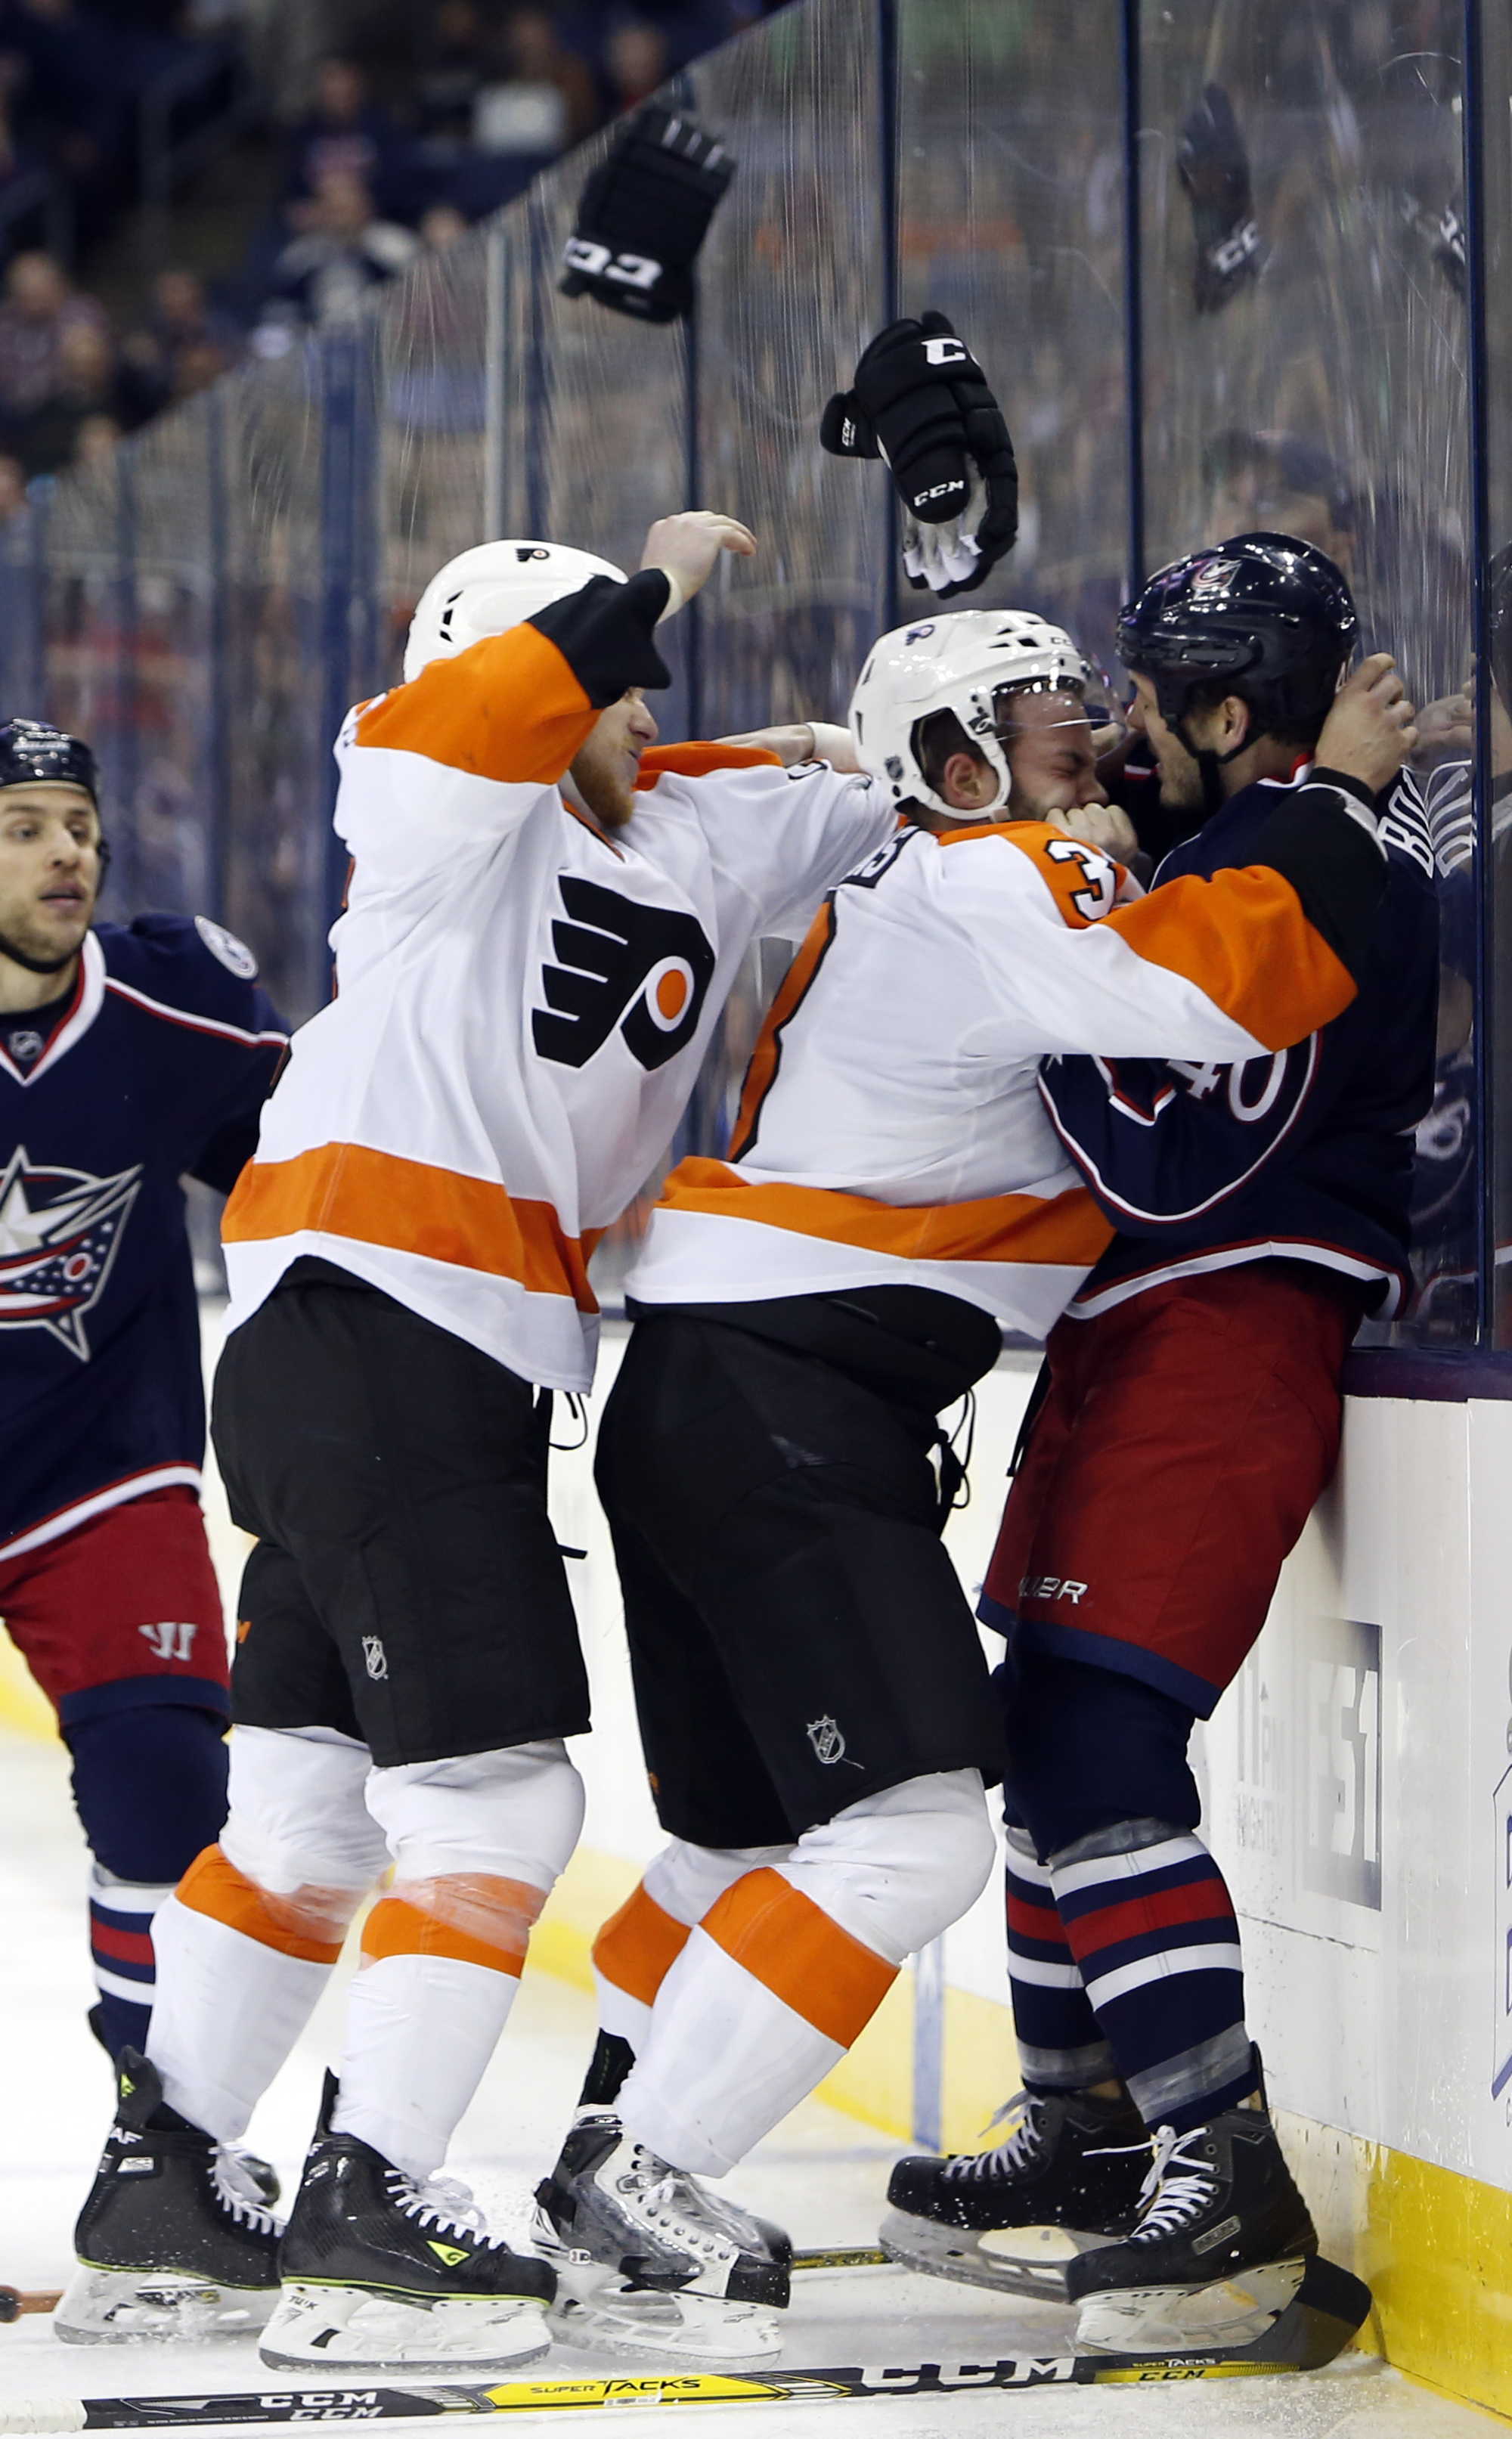 Philadelphia Flyers' Ryan White, left, and Radko Gudas, center, of the Czech Republic, attack Columbus Blue Jackets' Jared Boll after a hit by Boll during the second period of an NHL hockey game Tuesday, March 22, 2016, in Columbus, Ohio. (AP Photo/Jay La